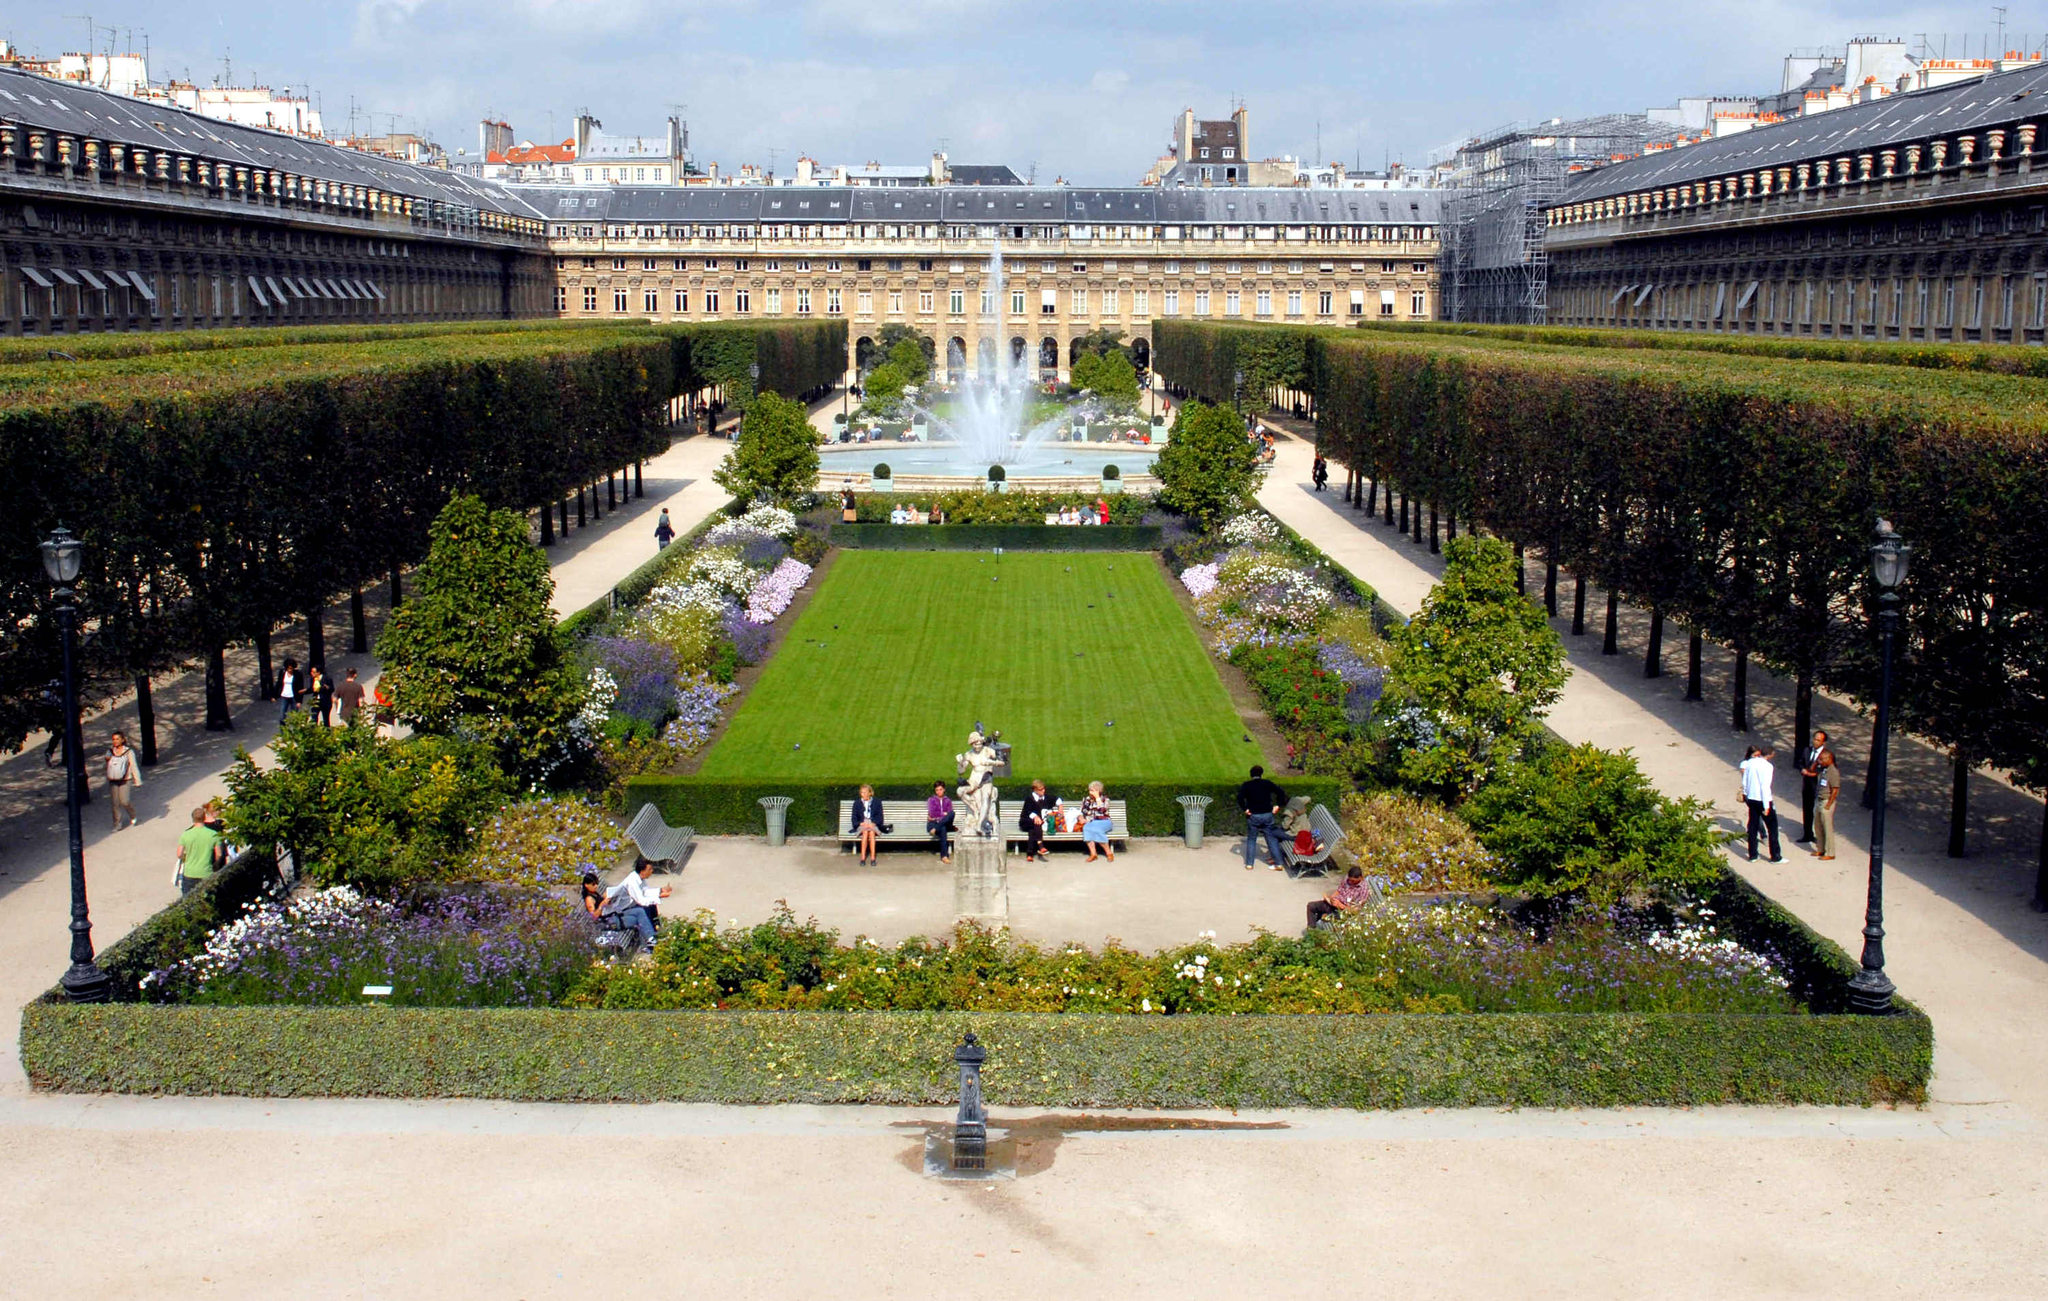 61/JARDIN PALAIS ROYALE/palais-royal-ete-paris-select.jpg